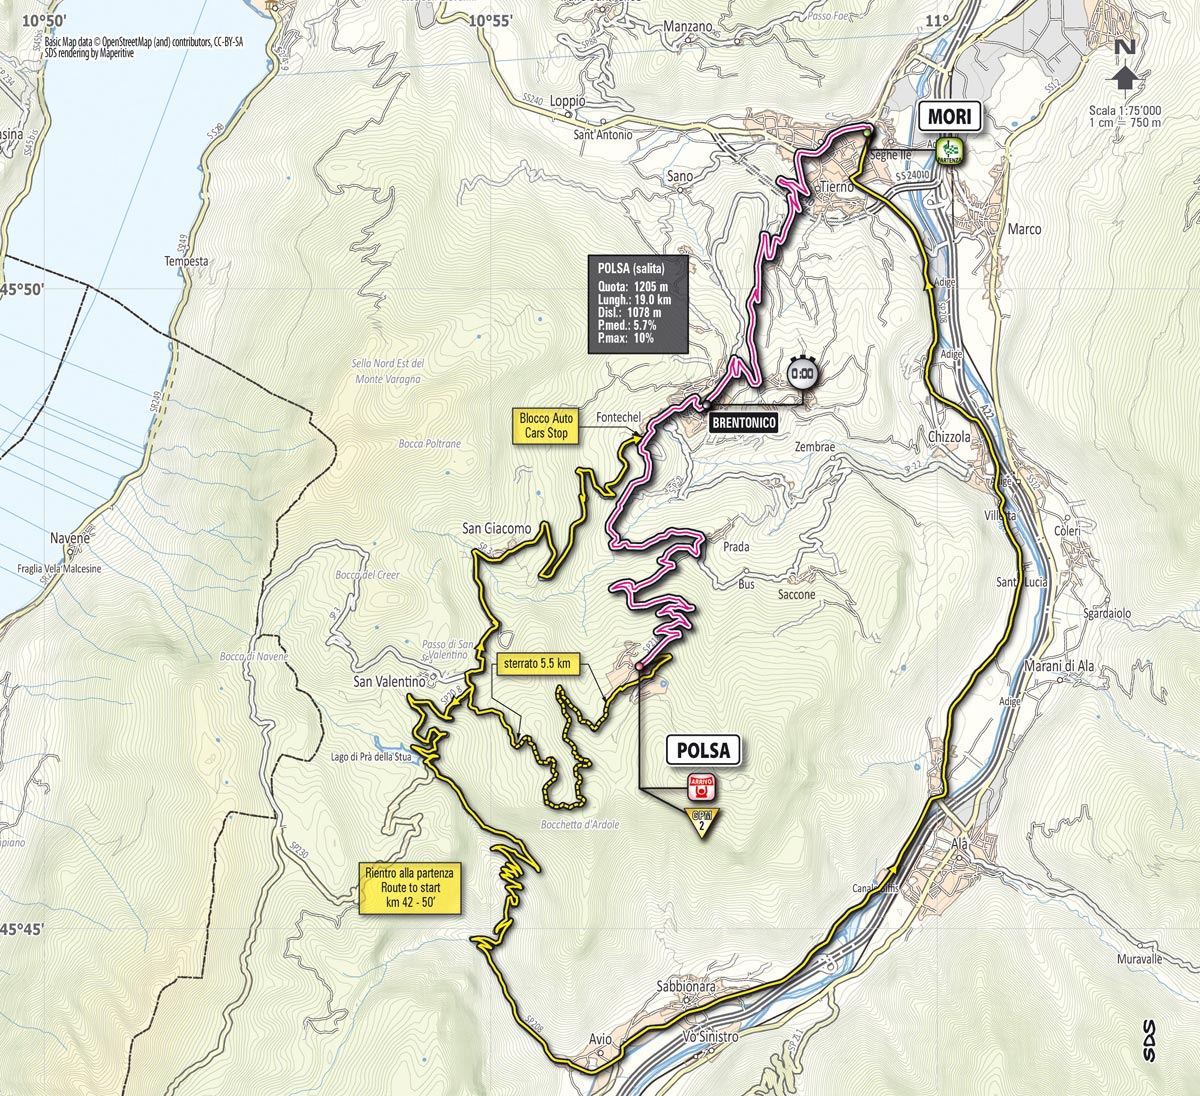 Giro d'Italia 2013 stage 18 map